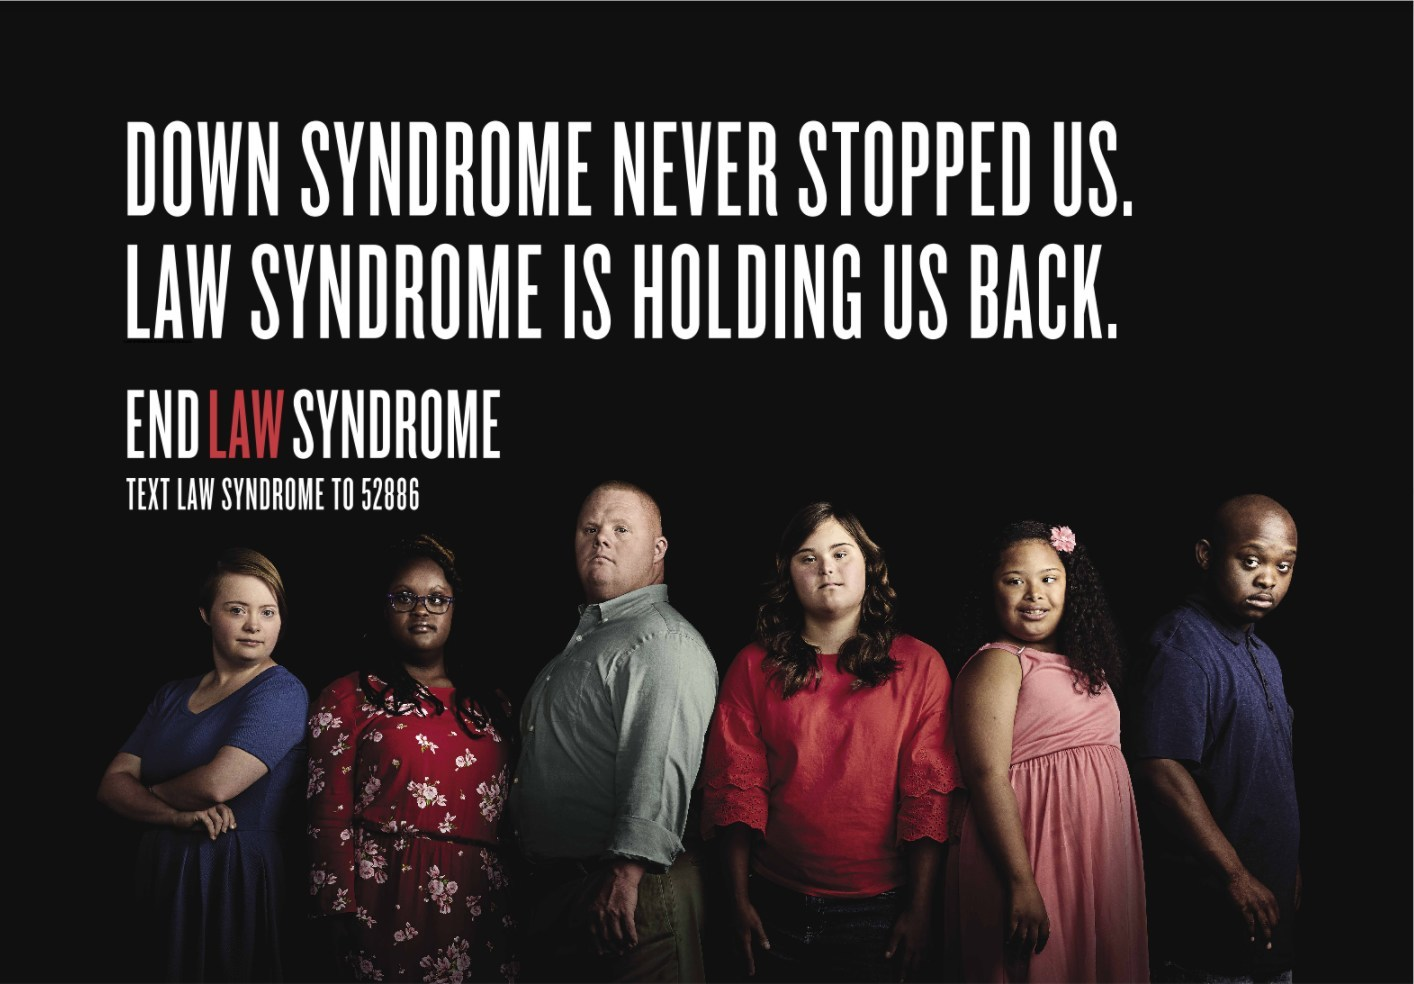 National Down Syndrome Society Launching National Campaign To Spotlight Laws That Hinder Fulfilling Lives For Individuals With Down Syndrome